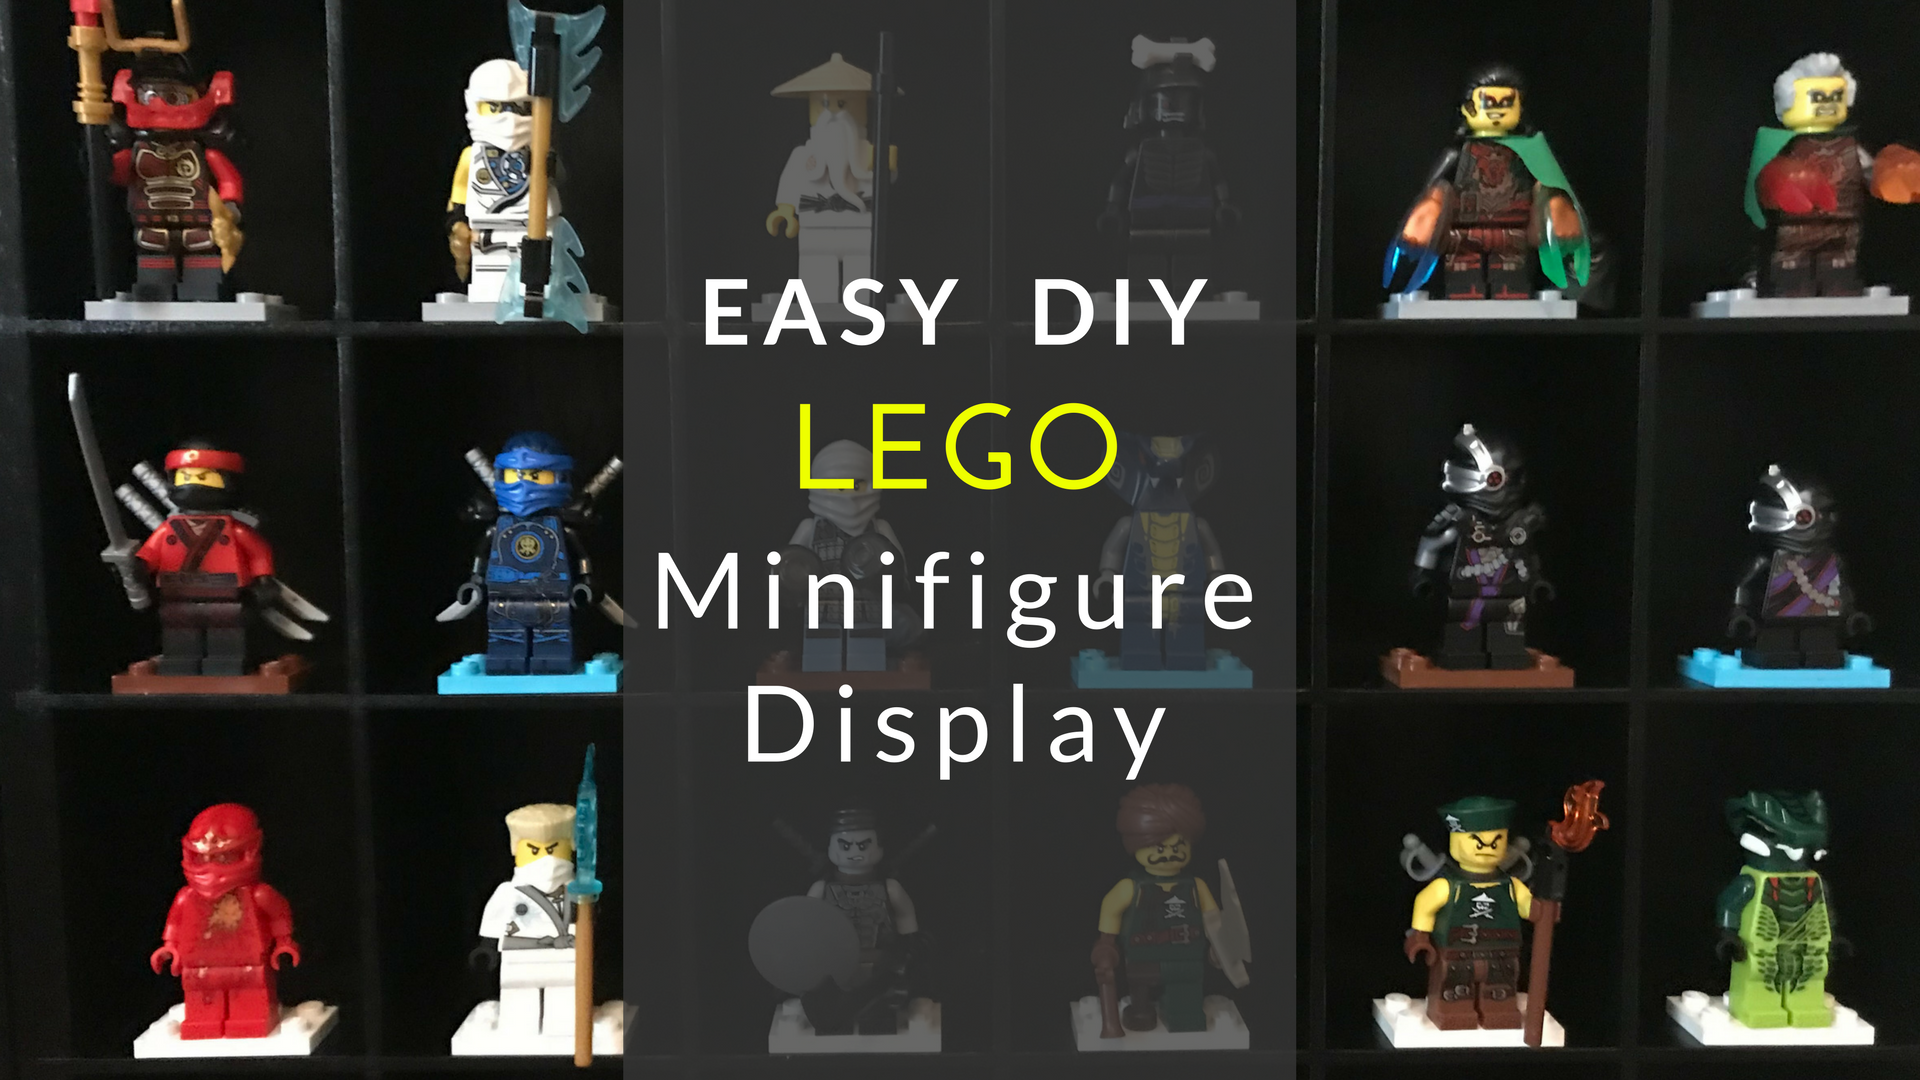 Easy DIY Lego Minifigure Display Case